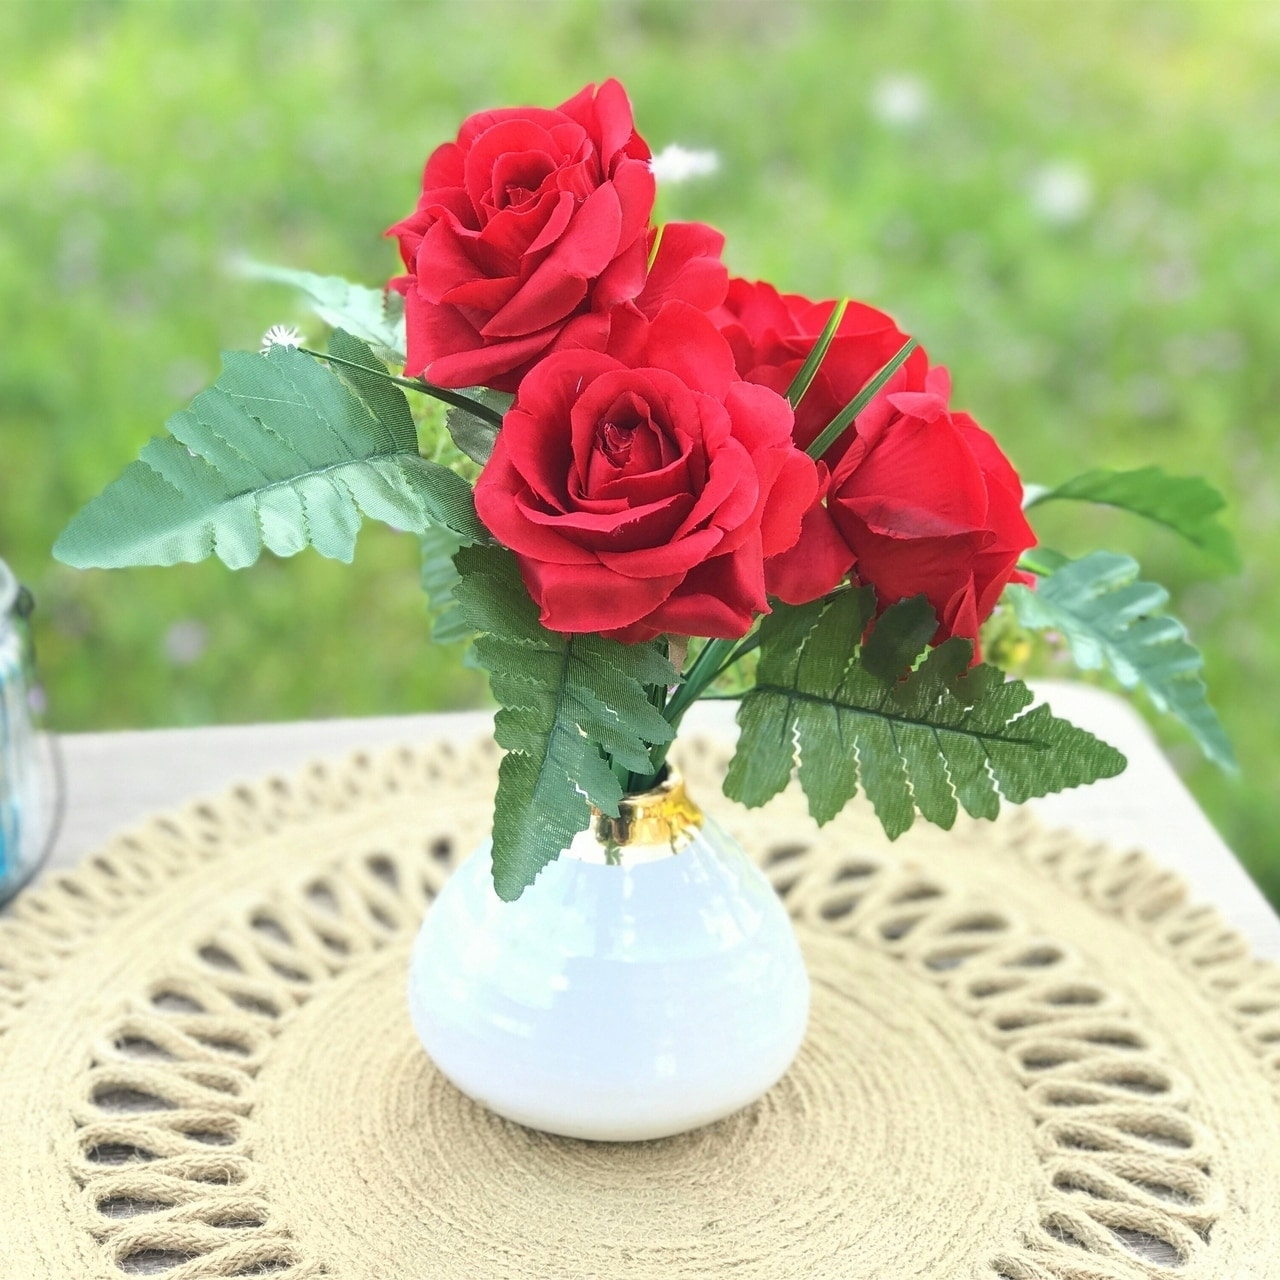 Enova Home Red Artificial Open Rose Mixed Flower Arrangement in White  Decoration Vase